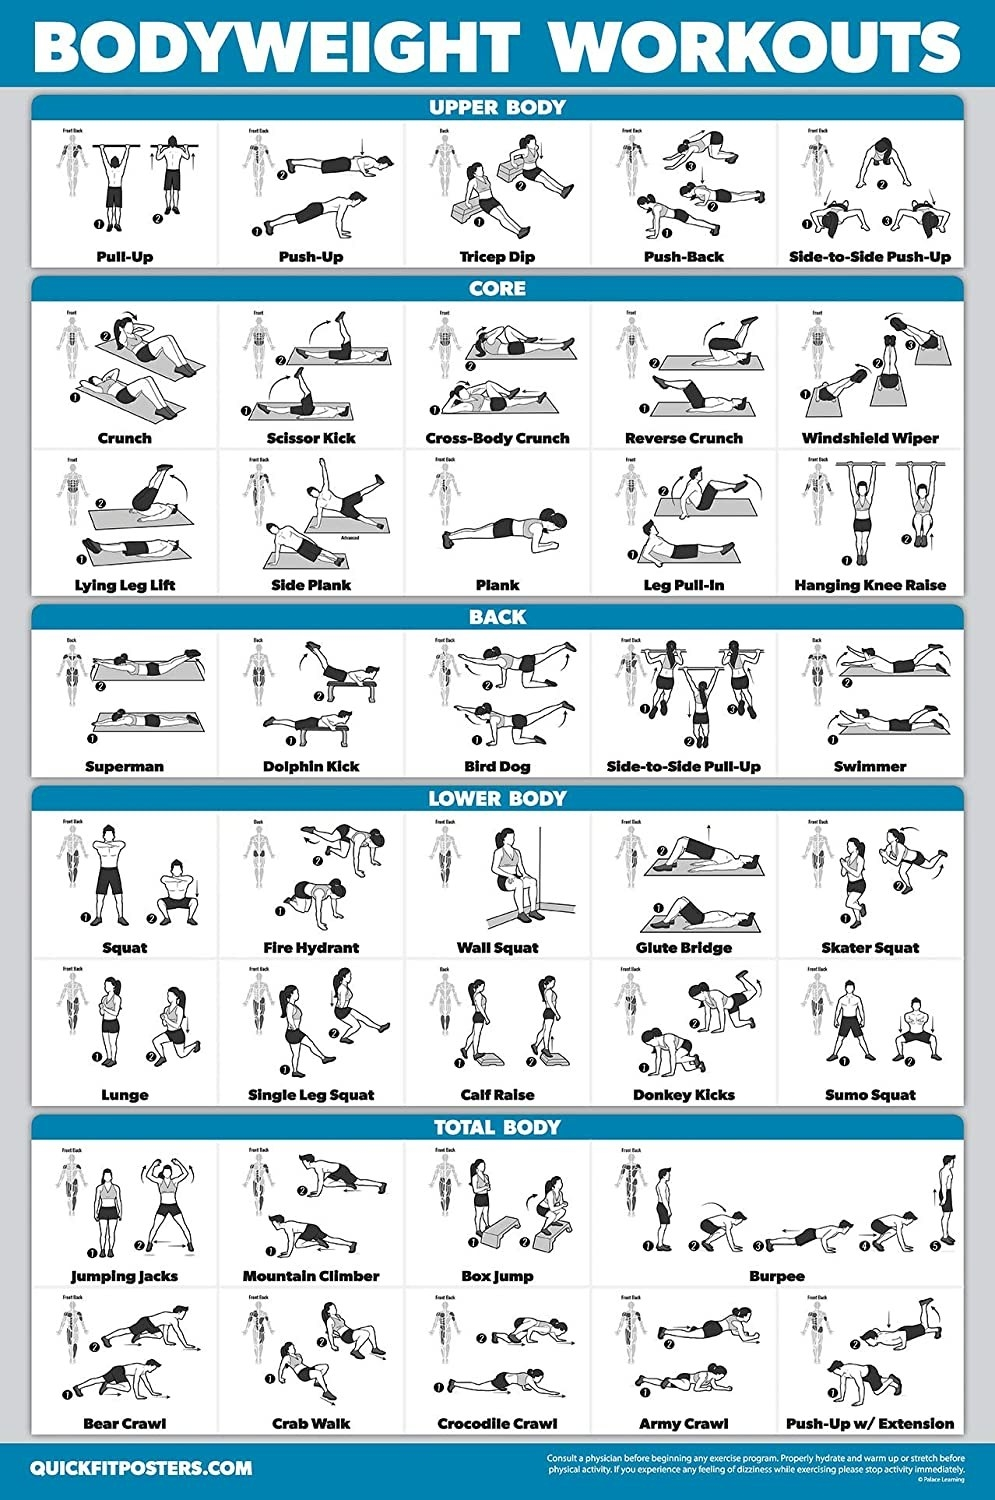 The bodyweight poster